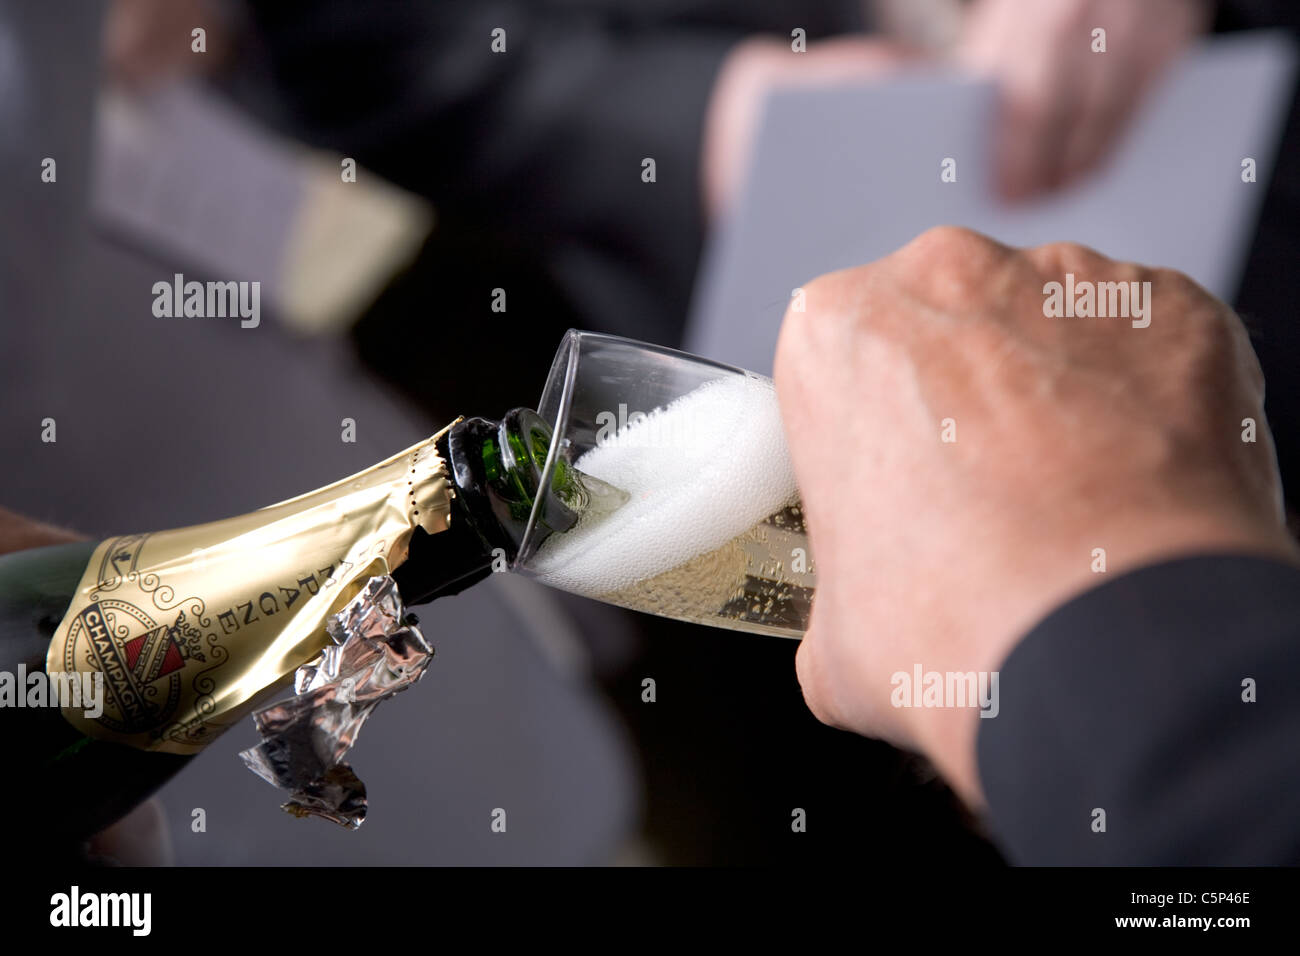 Champagne being poured into a champagne flute at a wedding breakfast - Stock Image